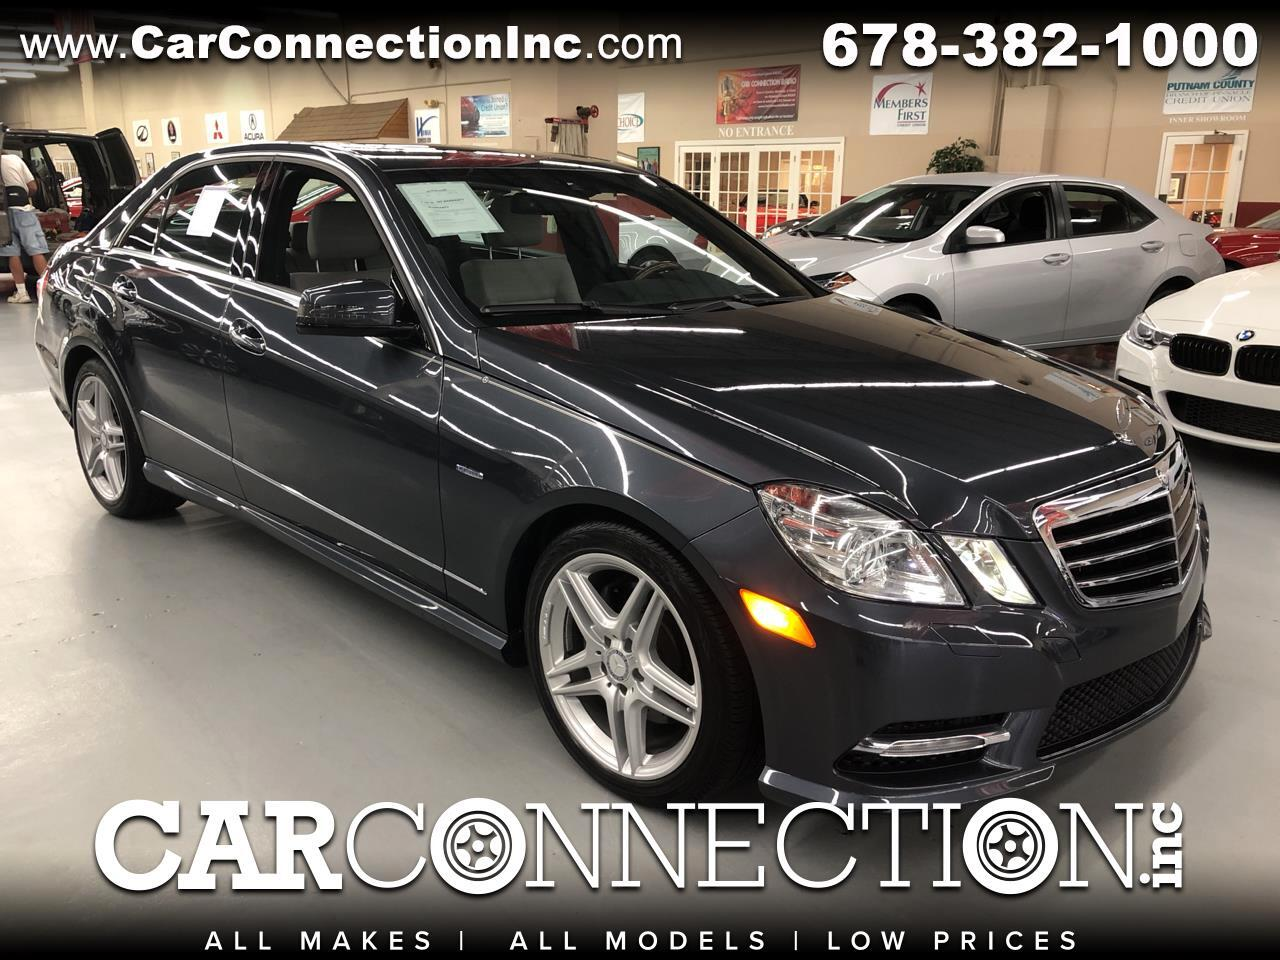 2012 Mercedes-Benz E-Class E350 Luxury